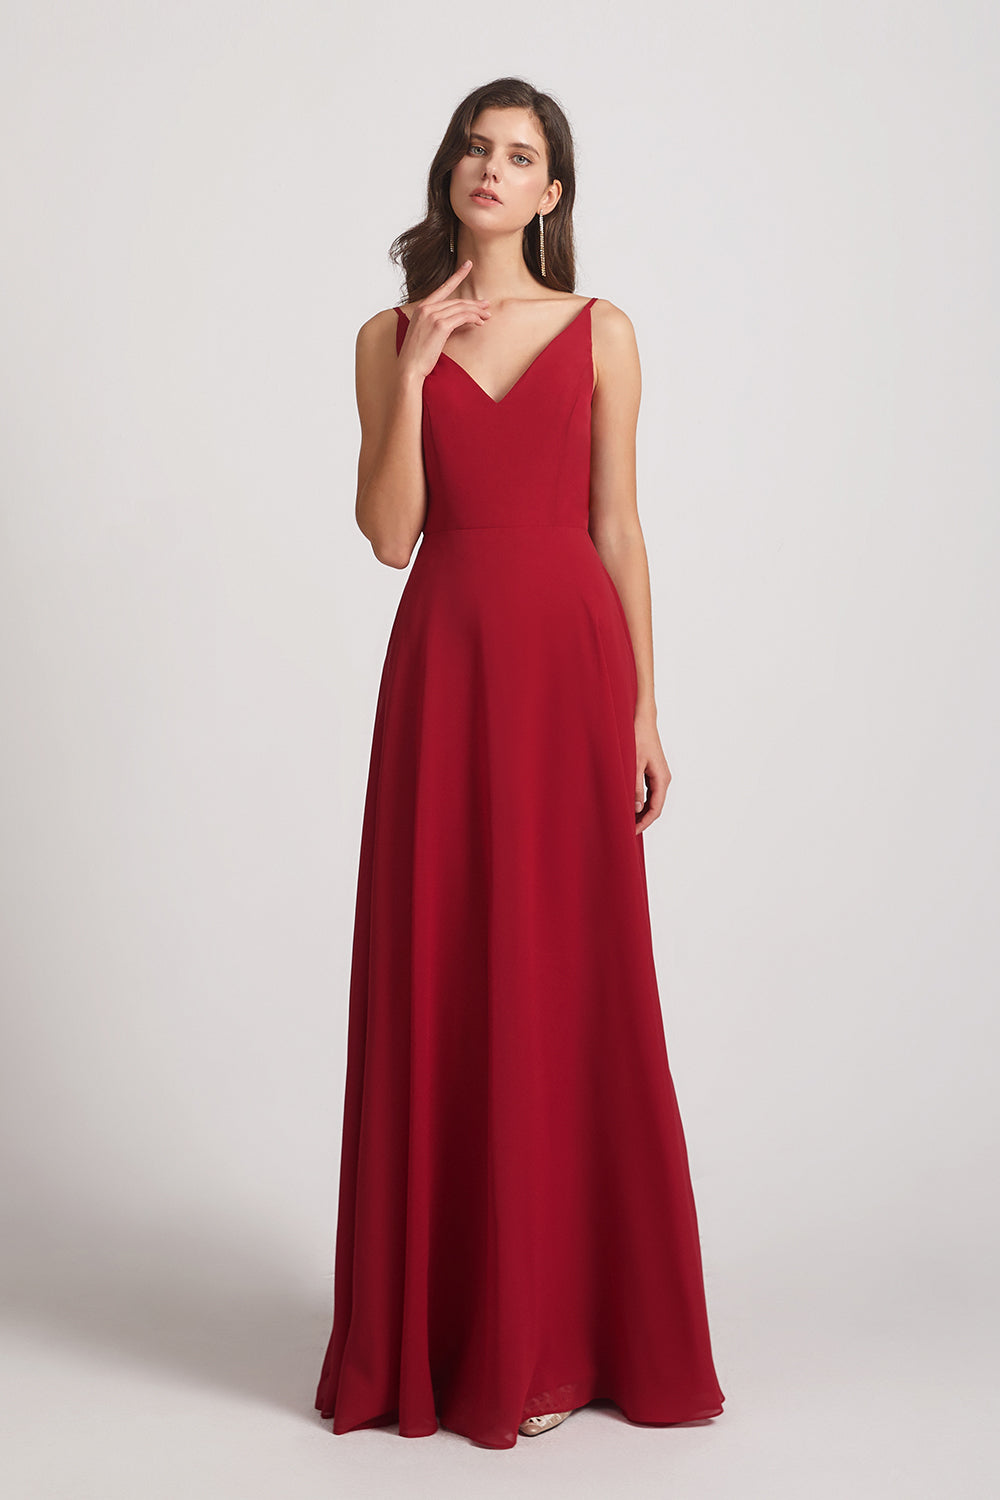 aline sleeveless maid of honor dress